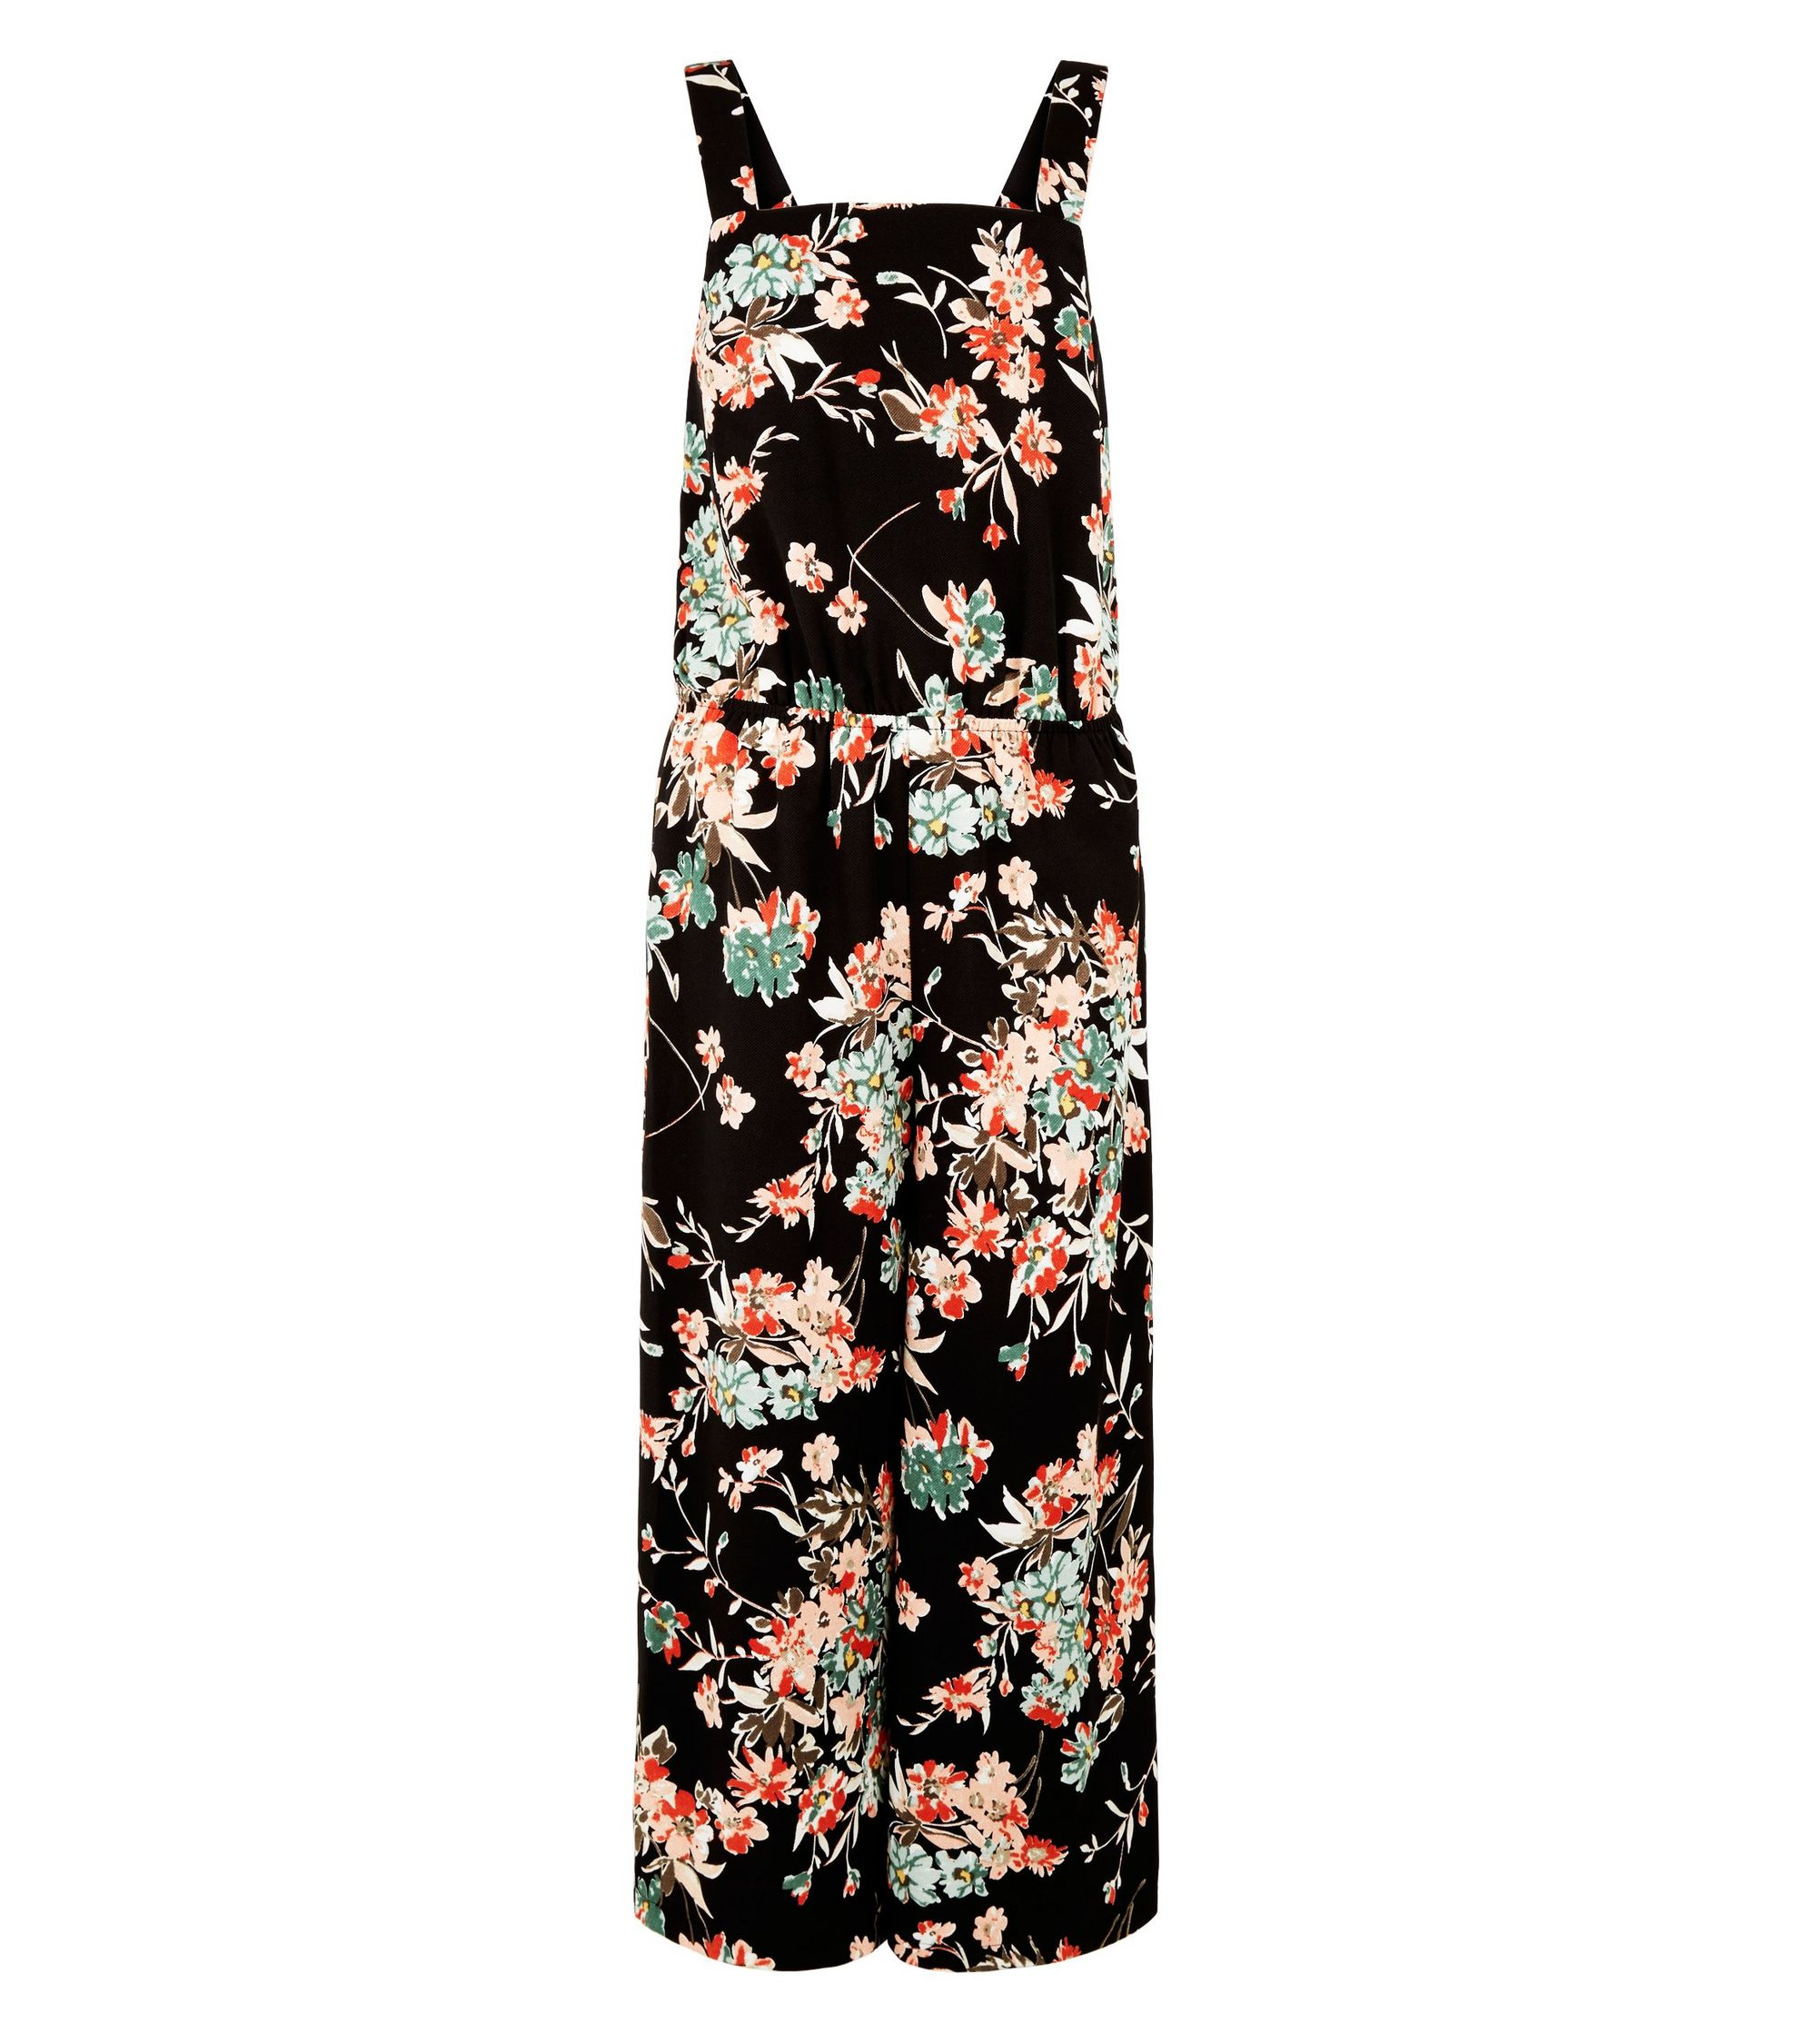 79c66fb7103 New Look Girls Black Floral Square Neck Jumpsuit at £9